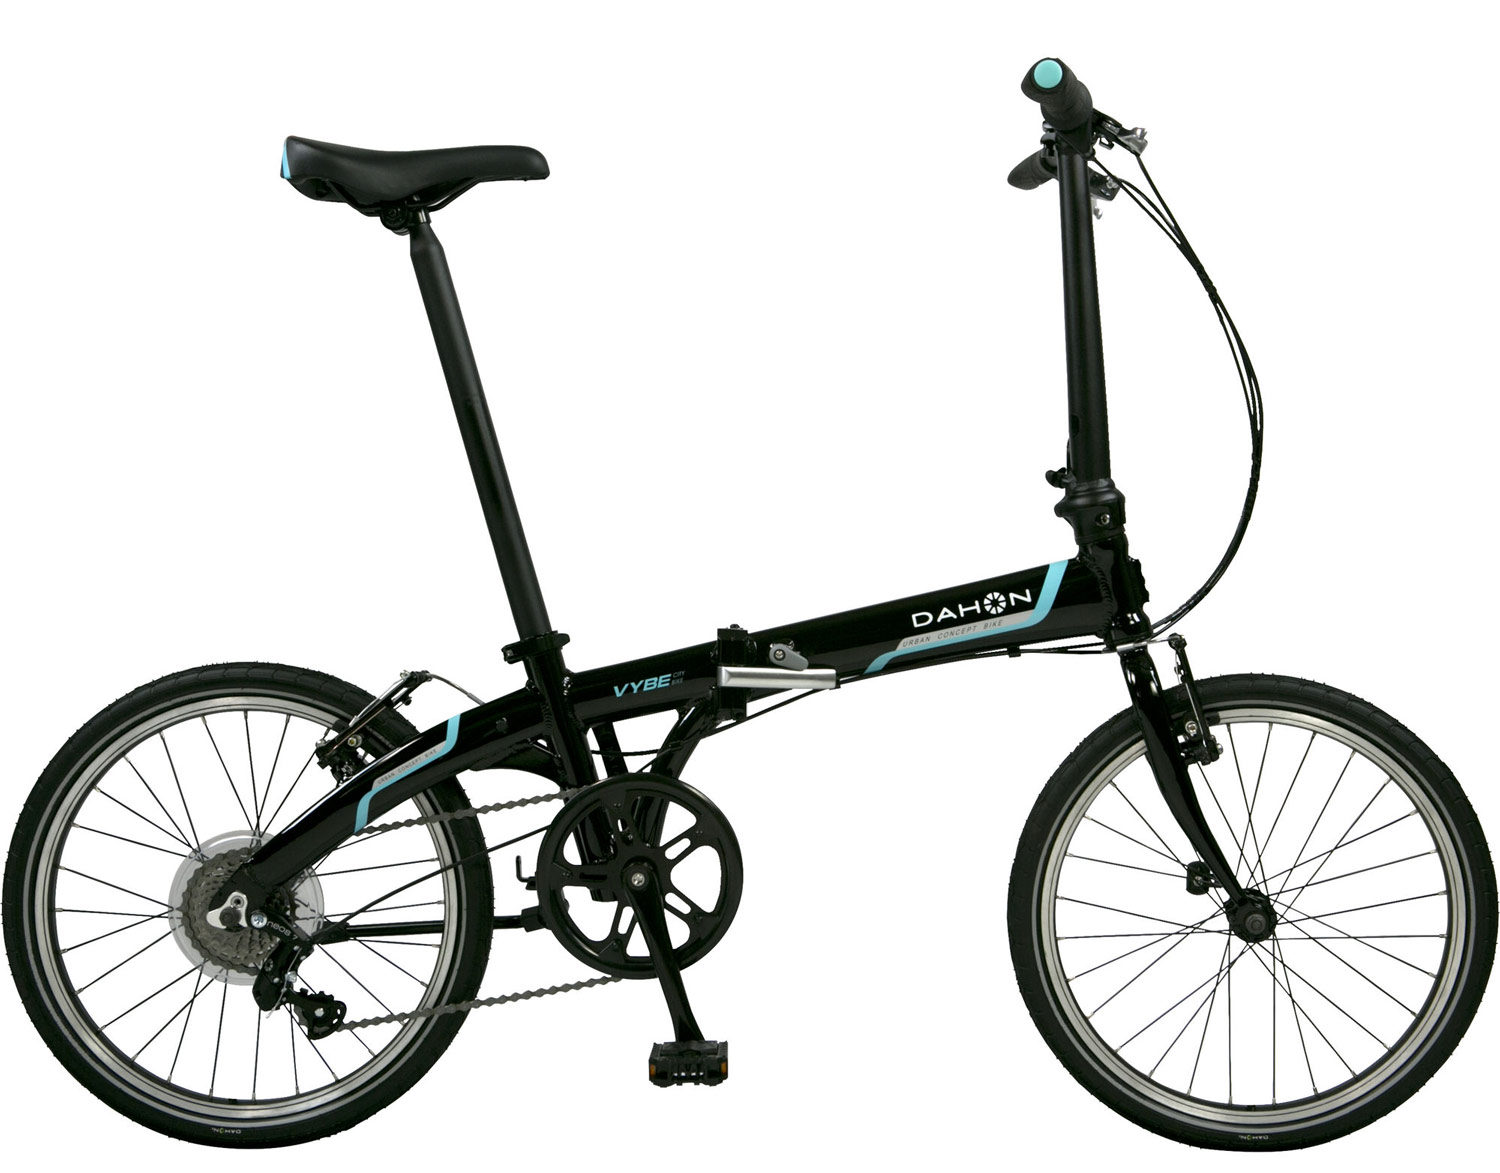 Dahon Vybe C7a Folding Bike Review